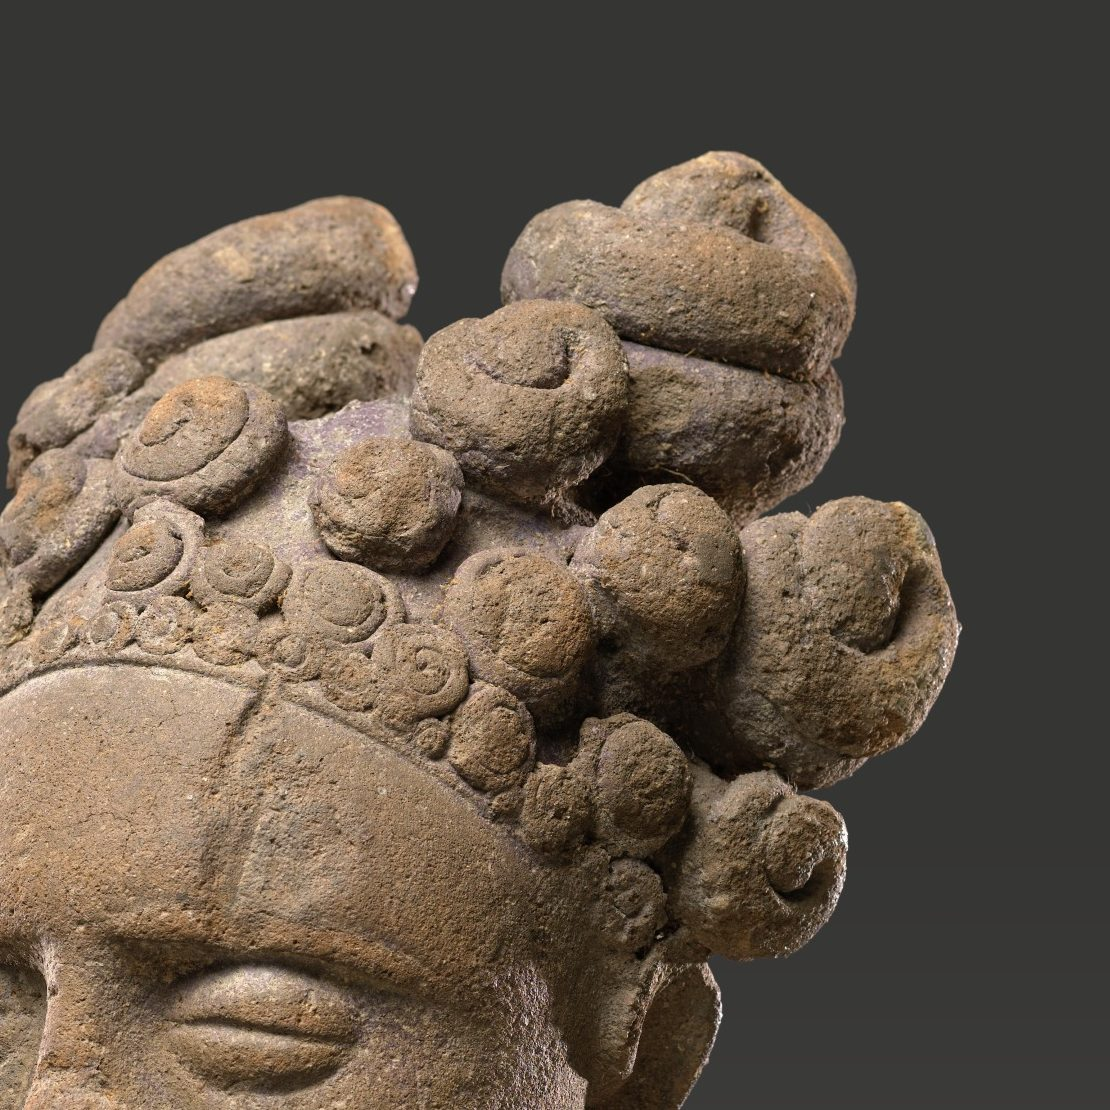 <p>African Galleries:</p> <p>When a member of the Akan royal family dies, a woman of the community creates a statue to house the individual's spirit. This portrait resembles the features of the deceased person, including her elaborate hairstyle. How would you like to be depicted in a memorial portrait?</p>